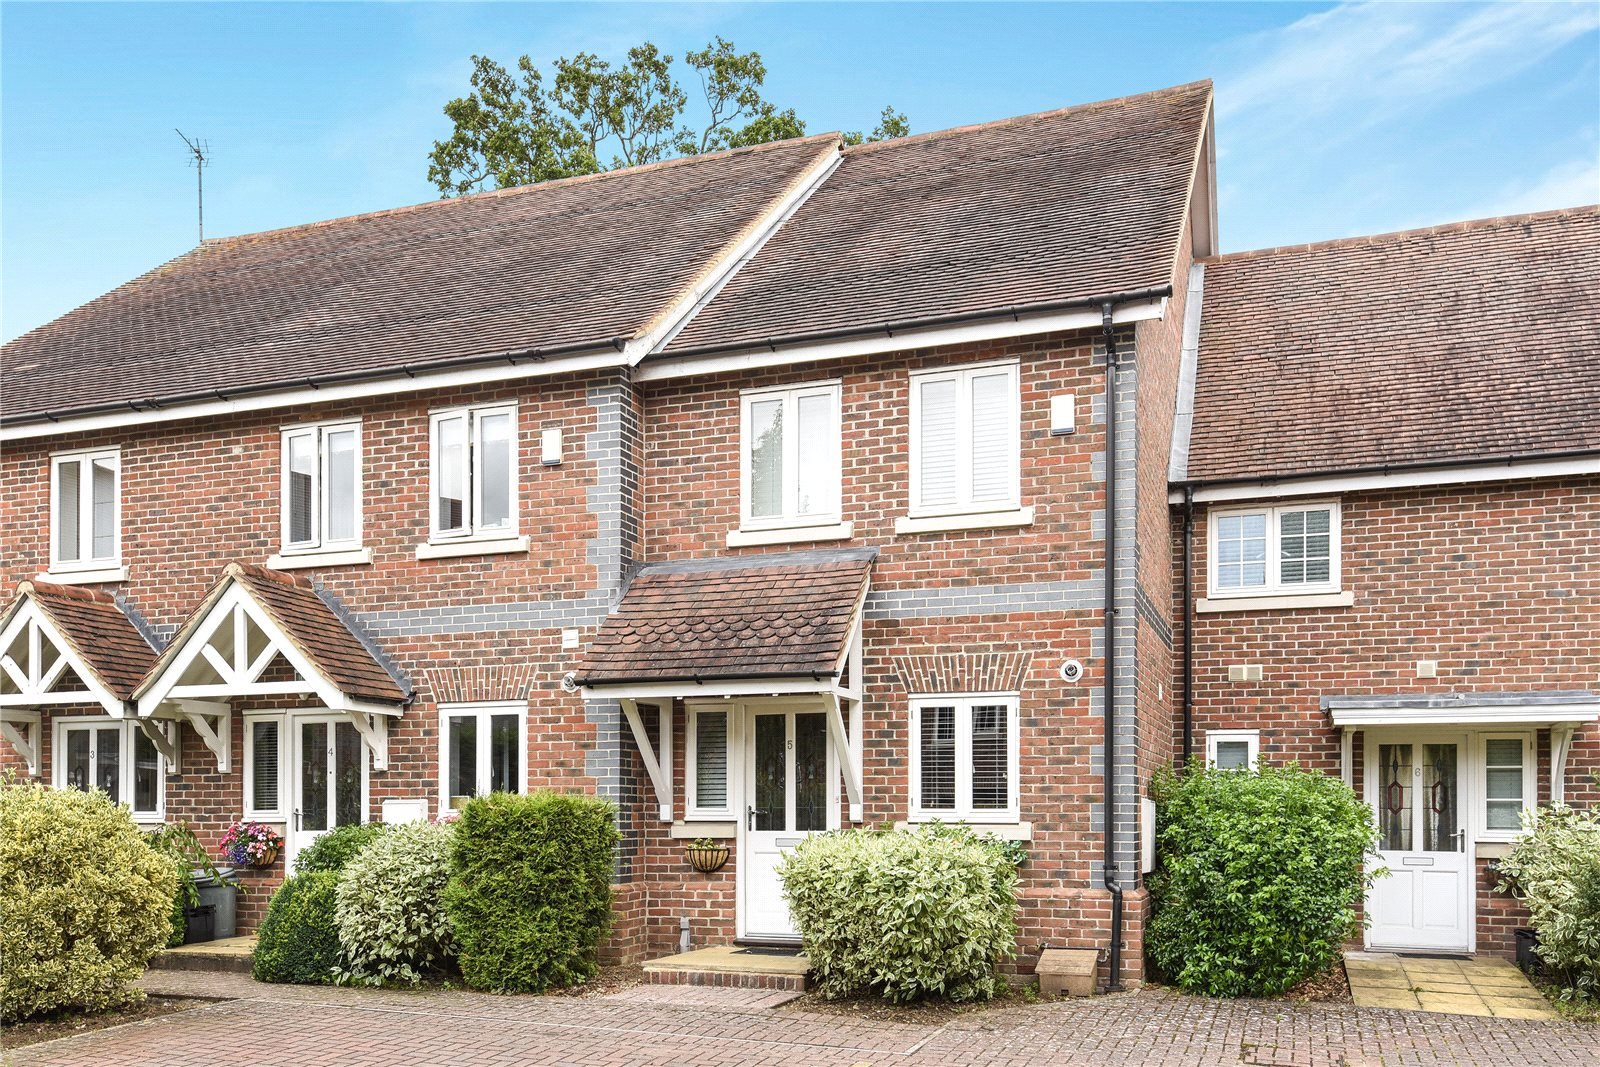 2 Bedrooms Terraced House for sale in Alder Mews, Sindlesham, Wokingham, Berkshire, RG41